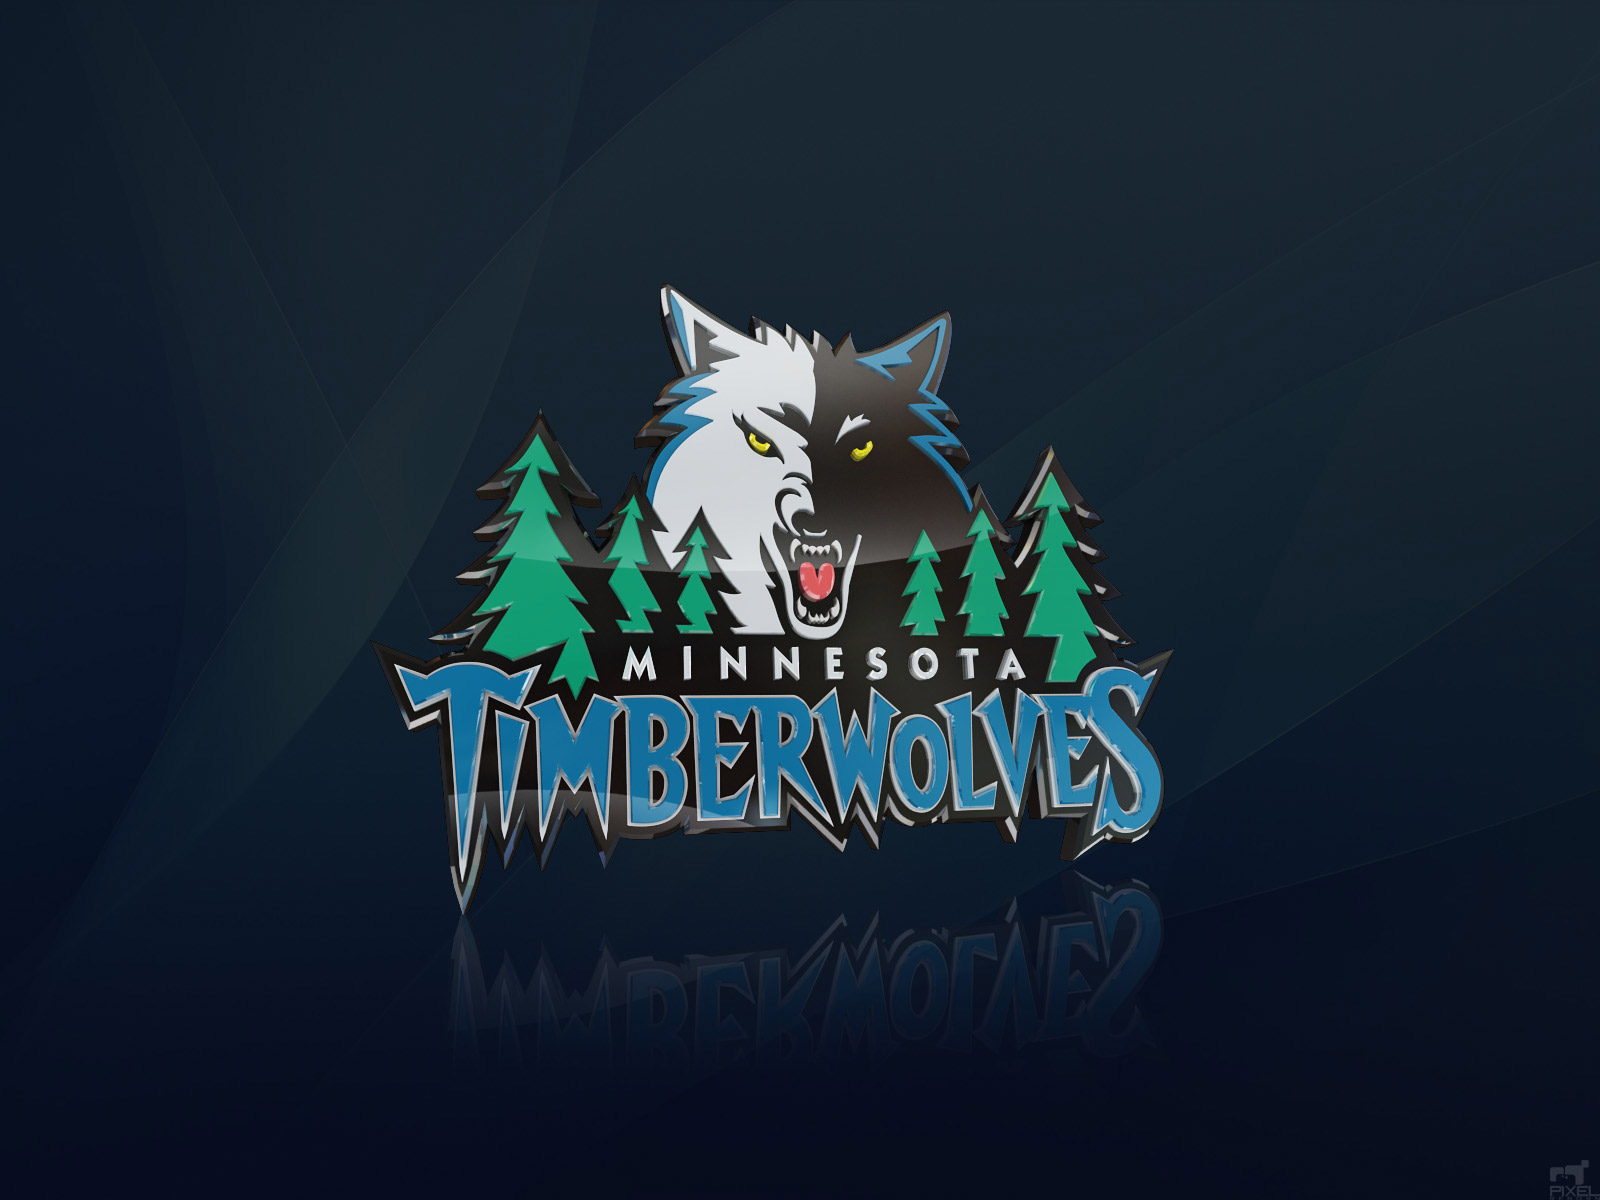 timberwolves mobile wallpaper